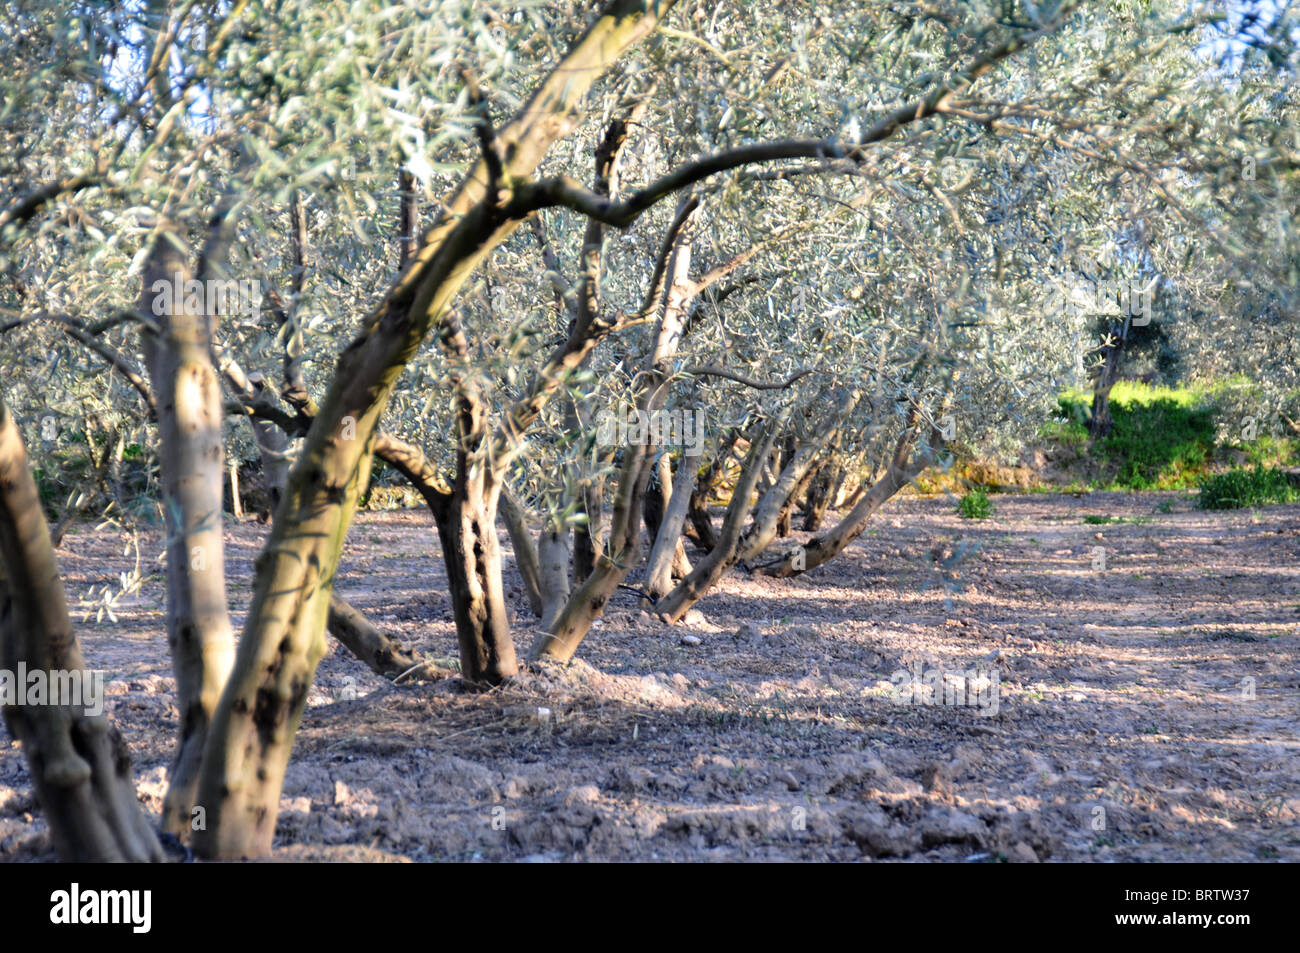 Olive Trees,Orchard,Olive Grove,Branches, Tree Trunks Tree shapes Dappled Light Forestry Crops line of trees tree - Stock Image